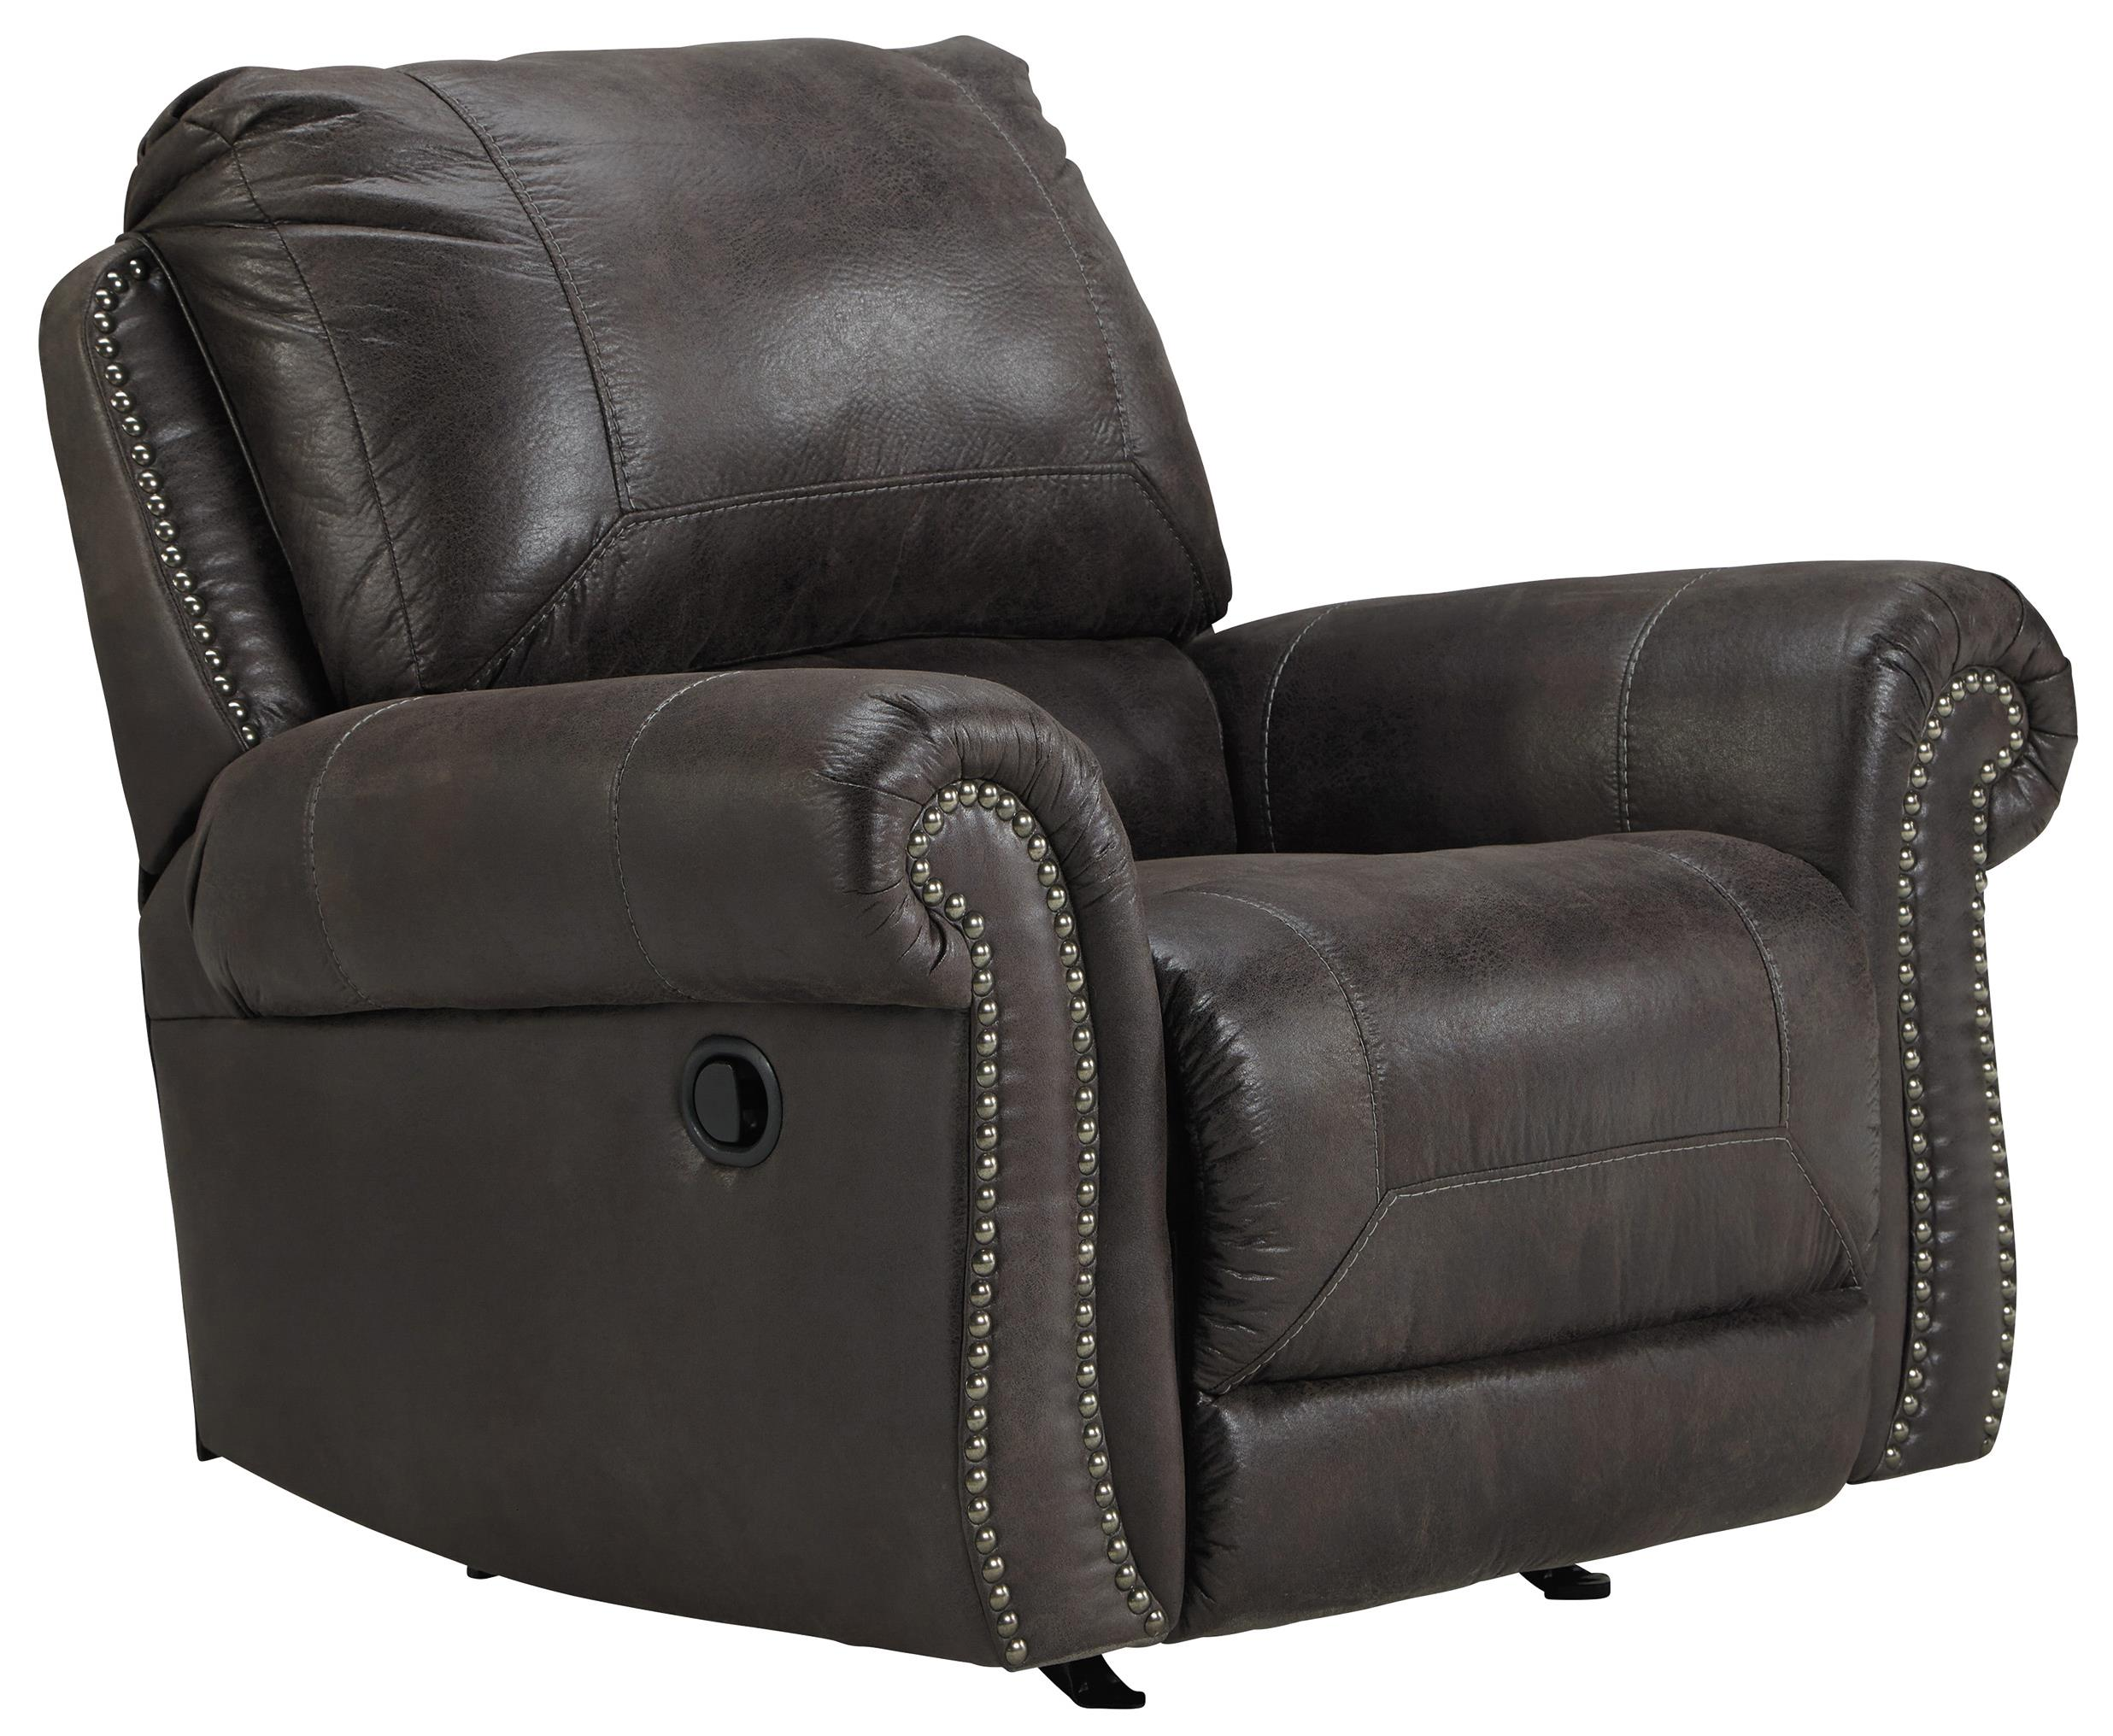 rocker and recliner chair chairs for short people benchcraft breville faux leather with rolled arms